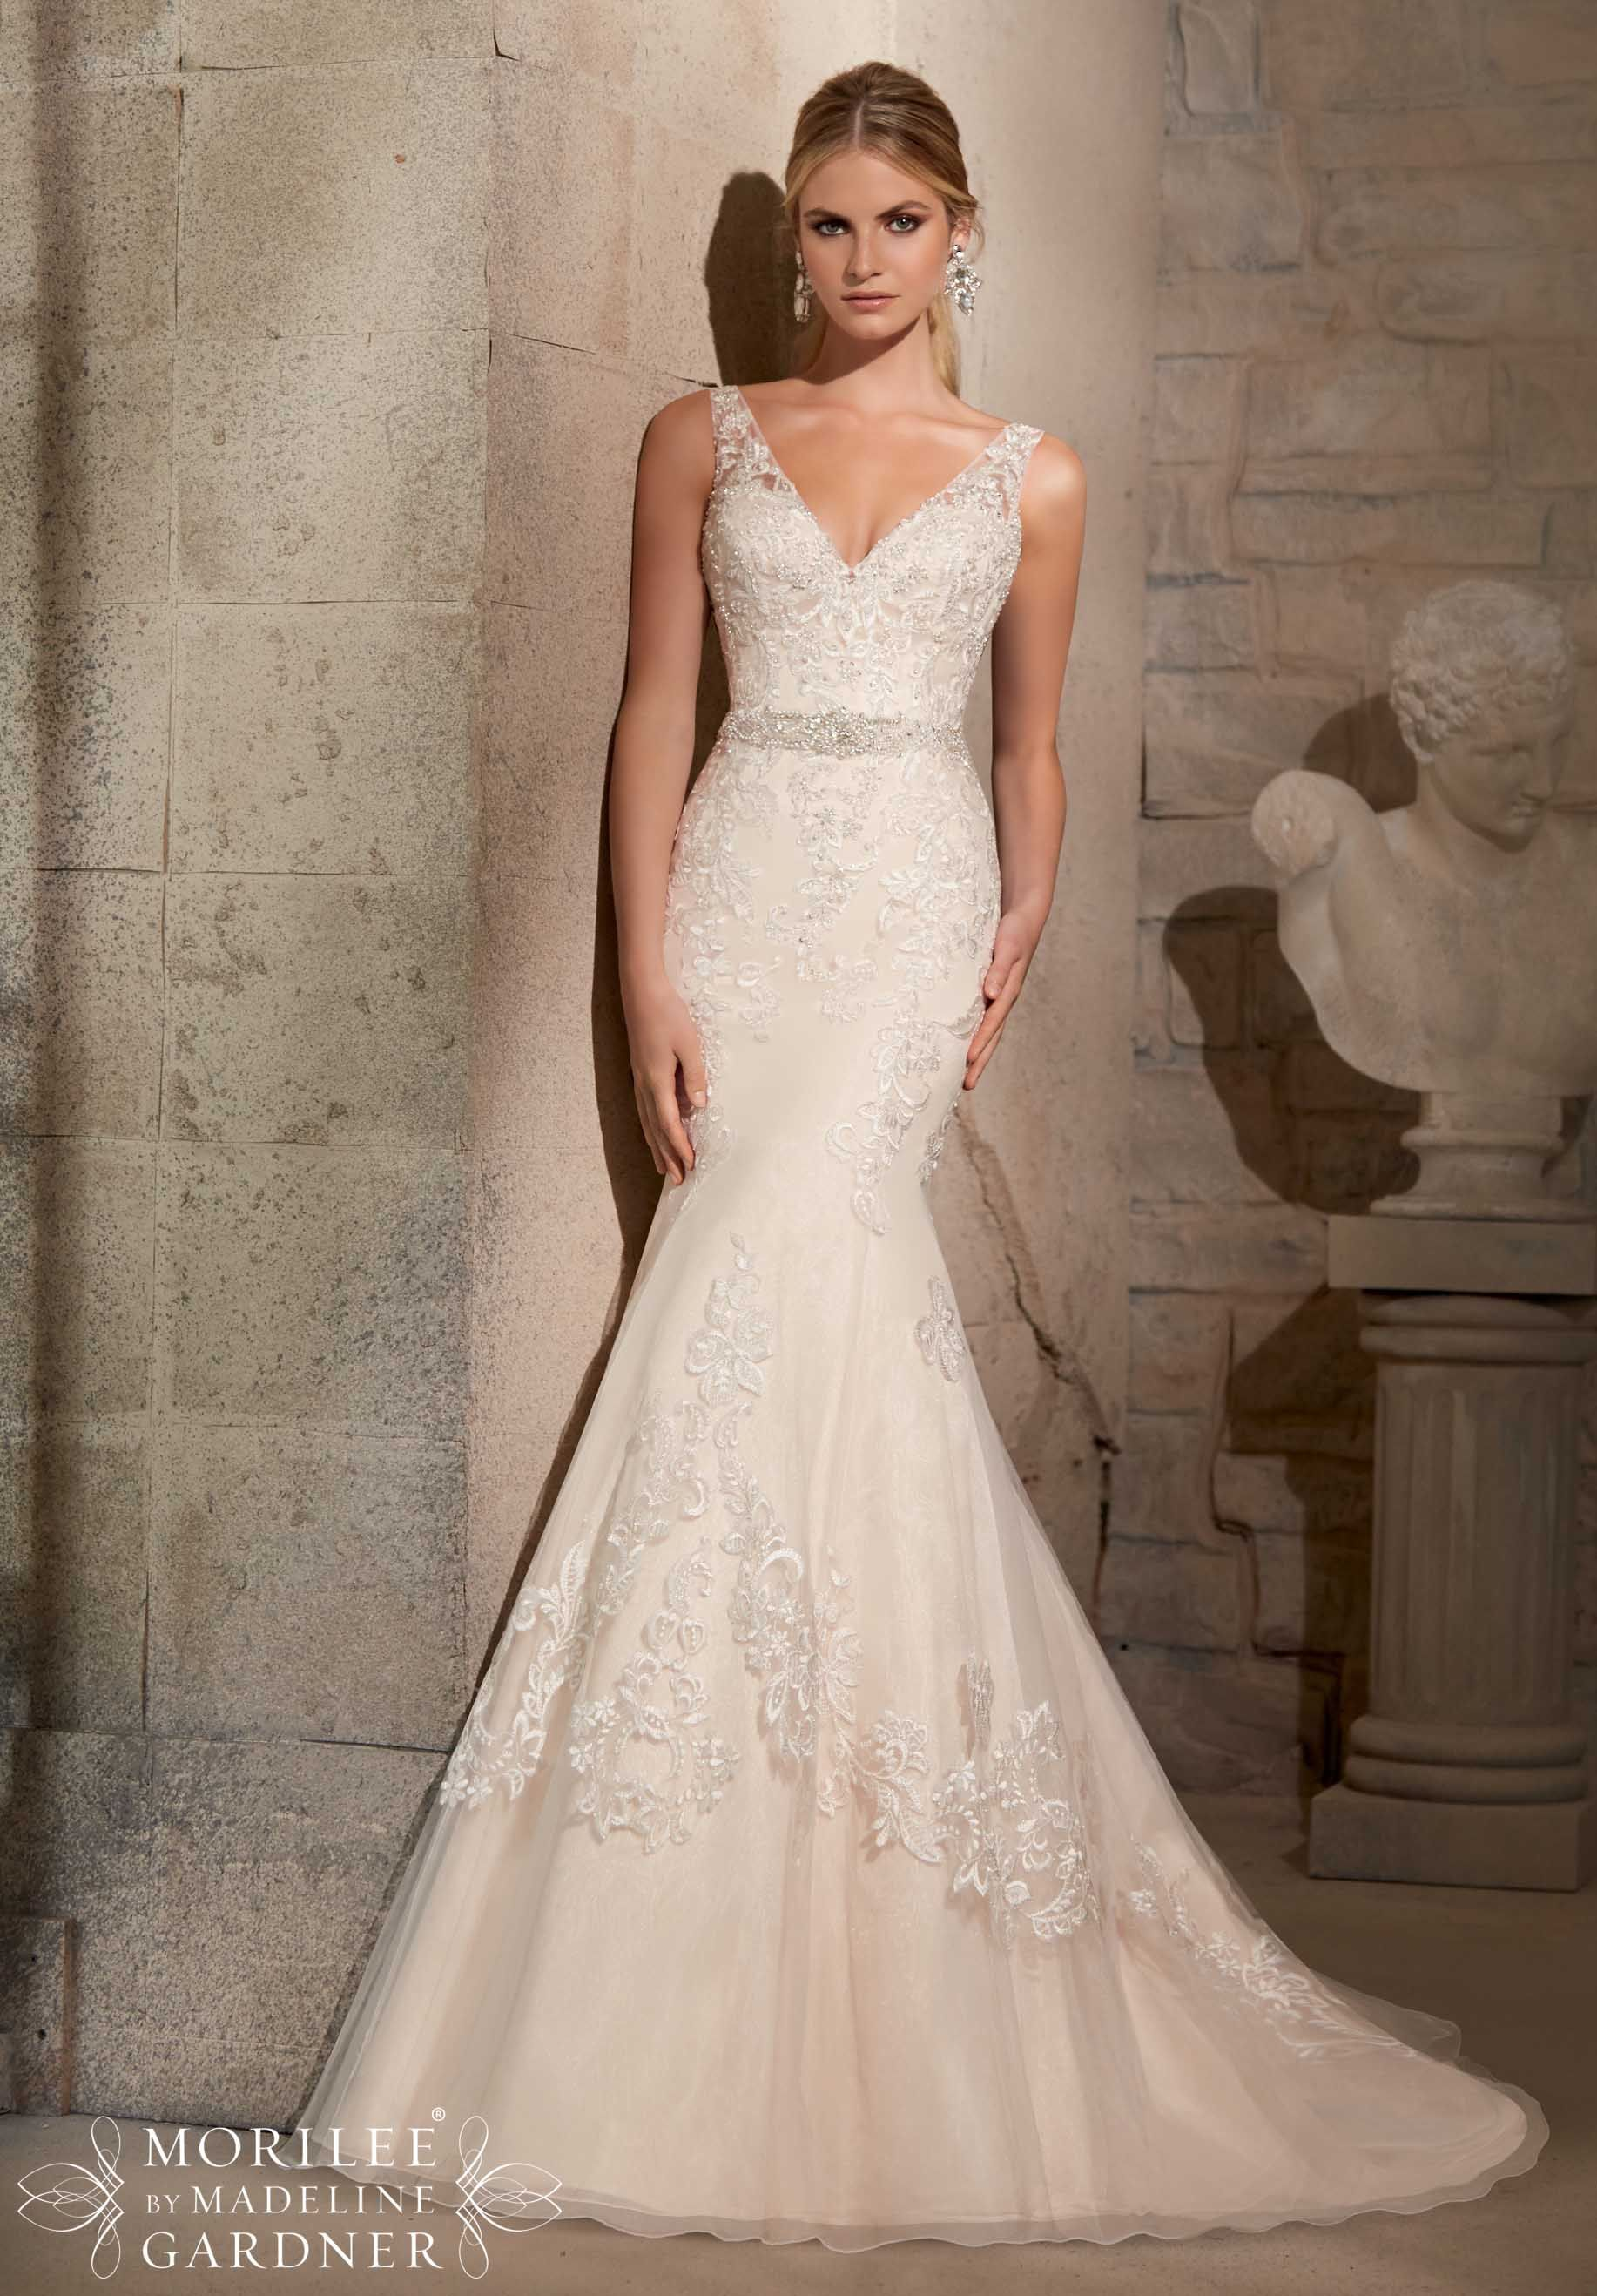 Gold belt for wedding dress  Wedding Gowns by Morilee featuring Embroidered Appliques on Net with